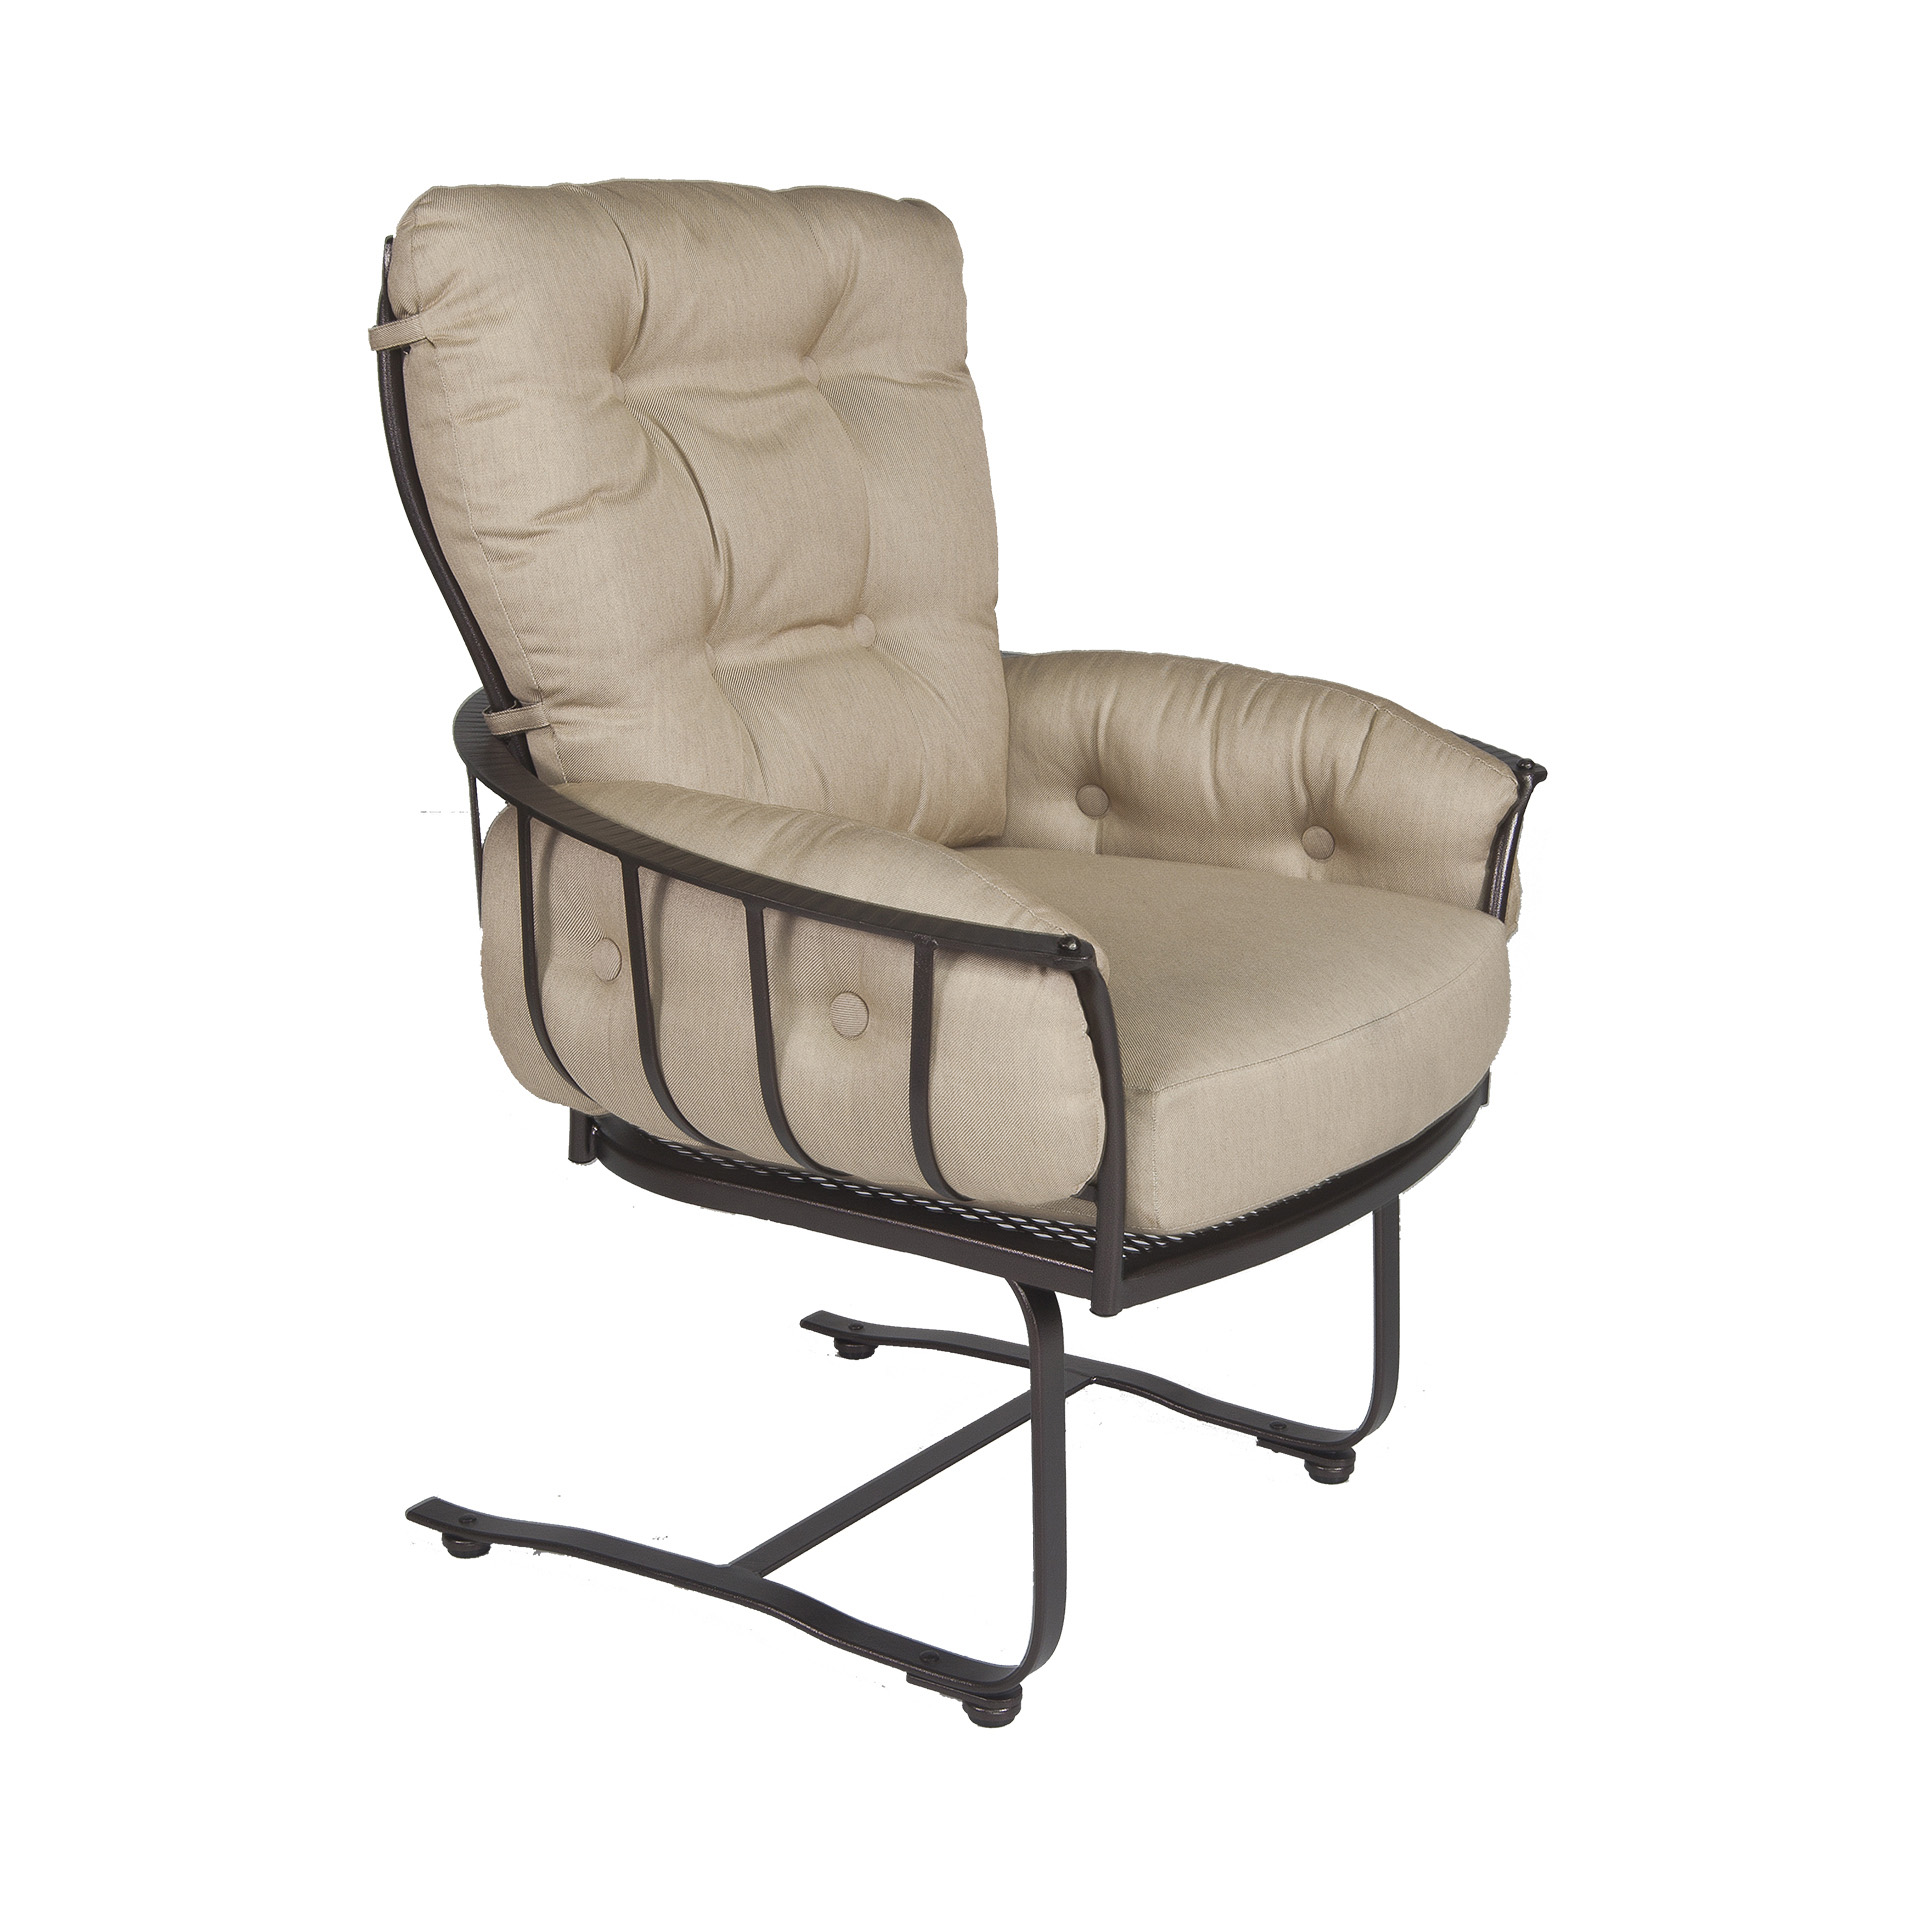 spring base club dining arm chair fishbecks patio furniture store